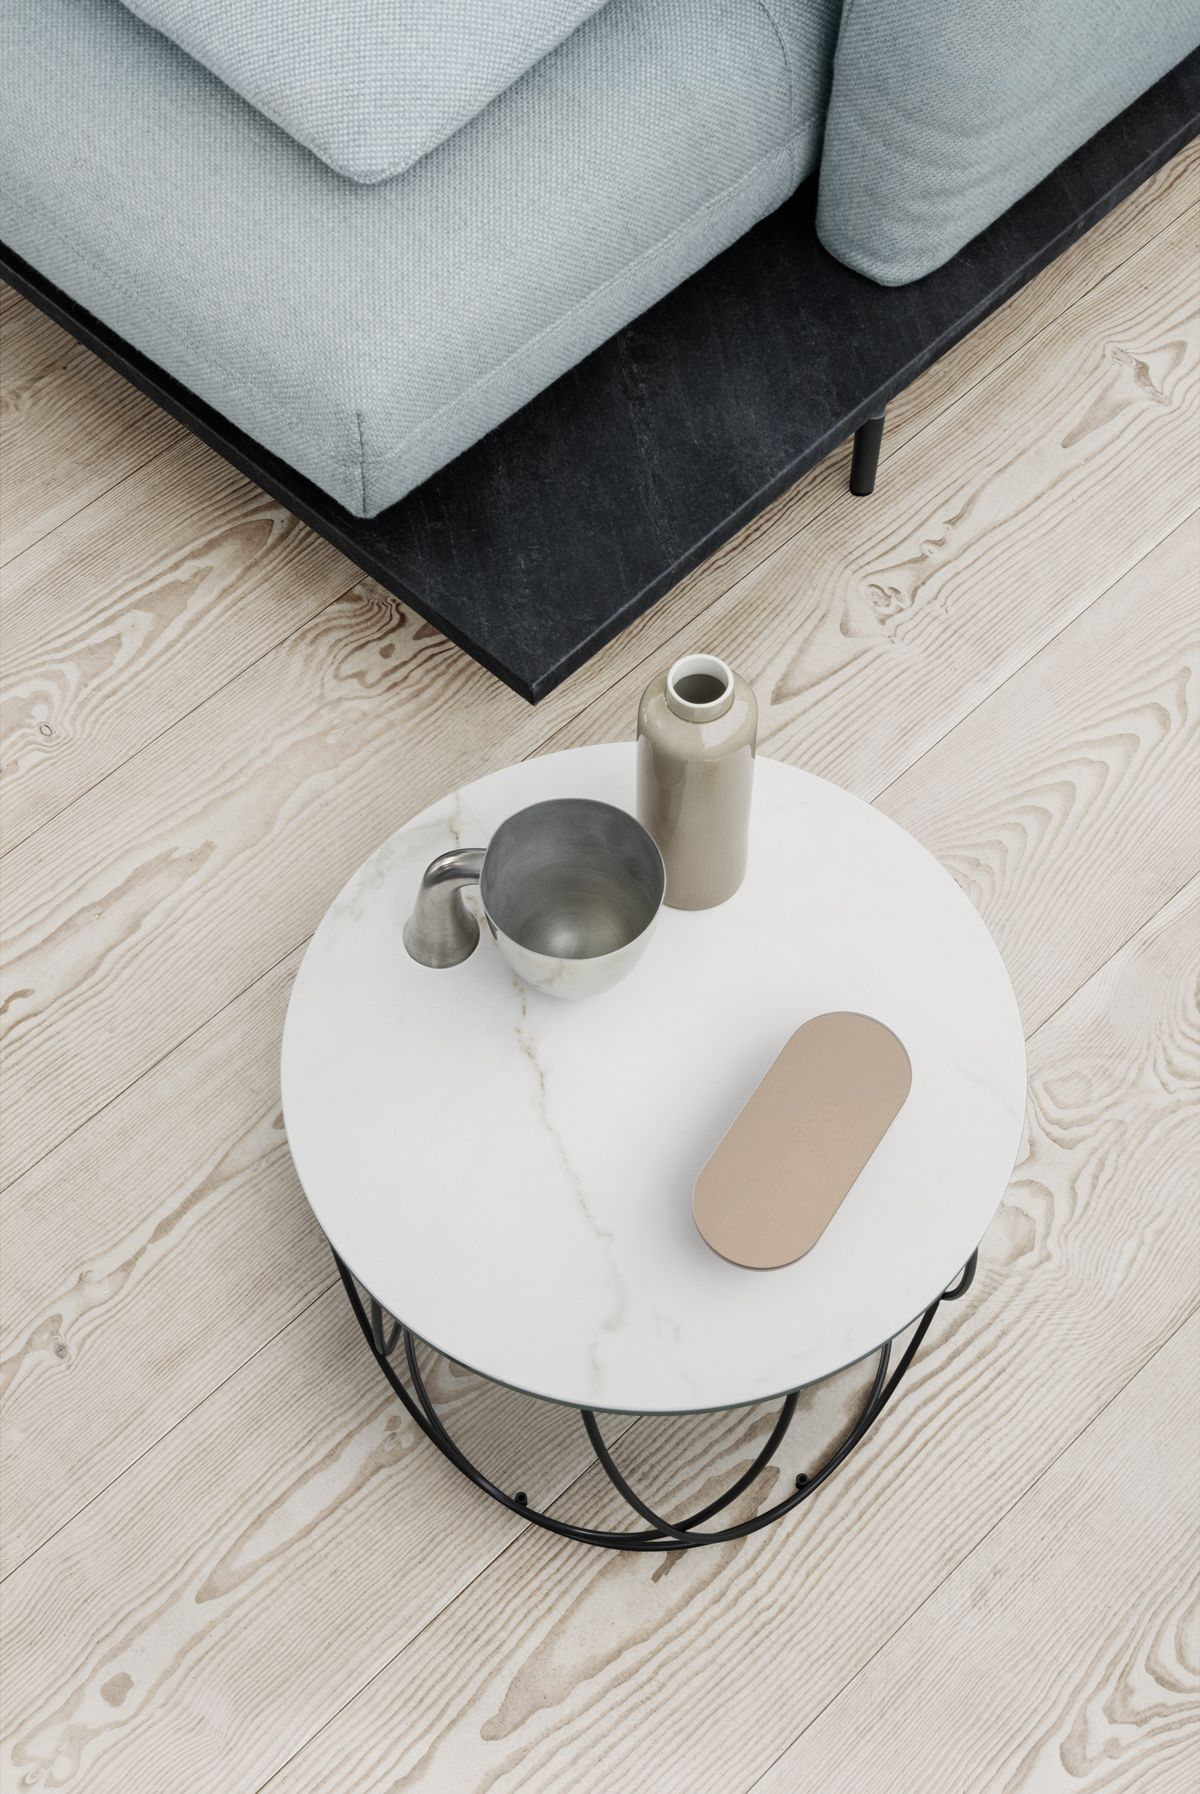 The Bestseller Of Our Coffeetables Rolf Benz 8770 Now Even Comes With A Ceramic Table Top Rolfbenz Coffeetable Mobel Mobel Martin Shops Inspiration